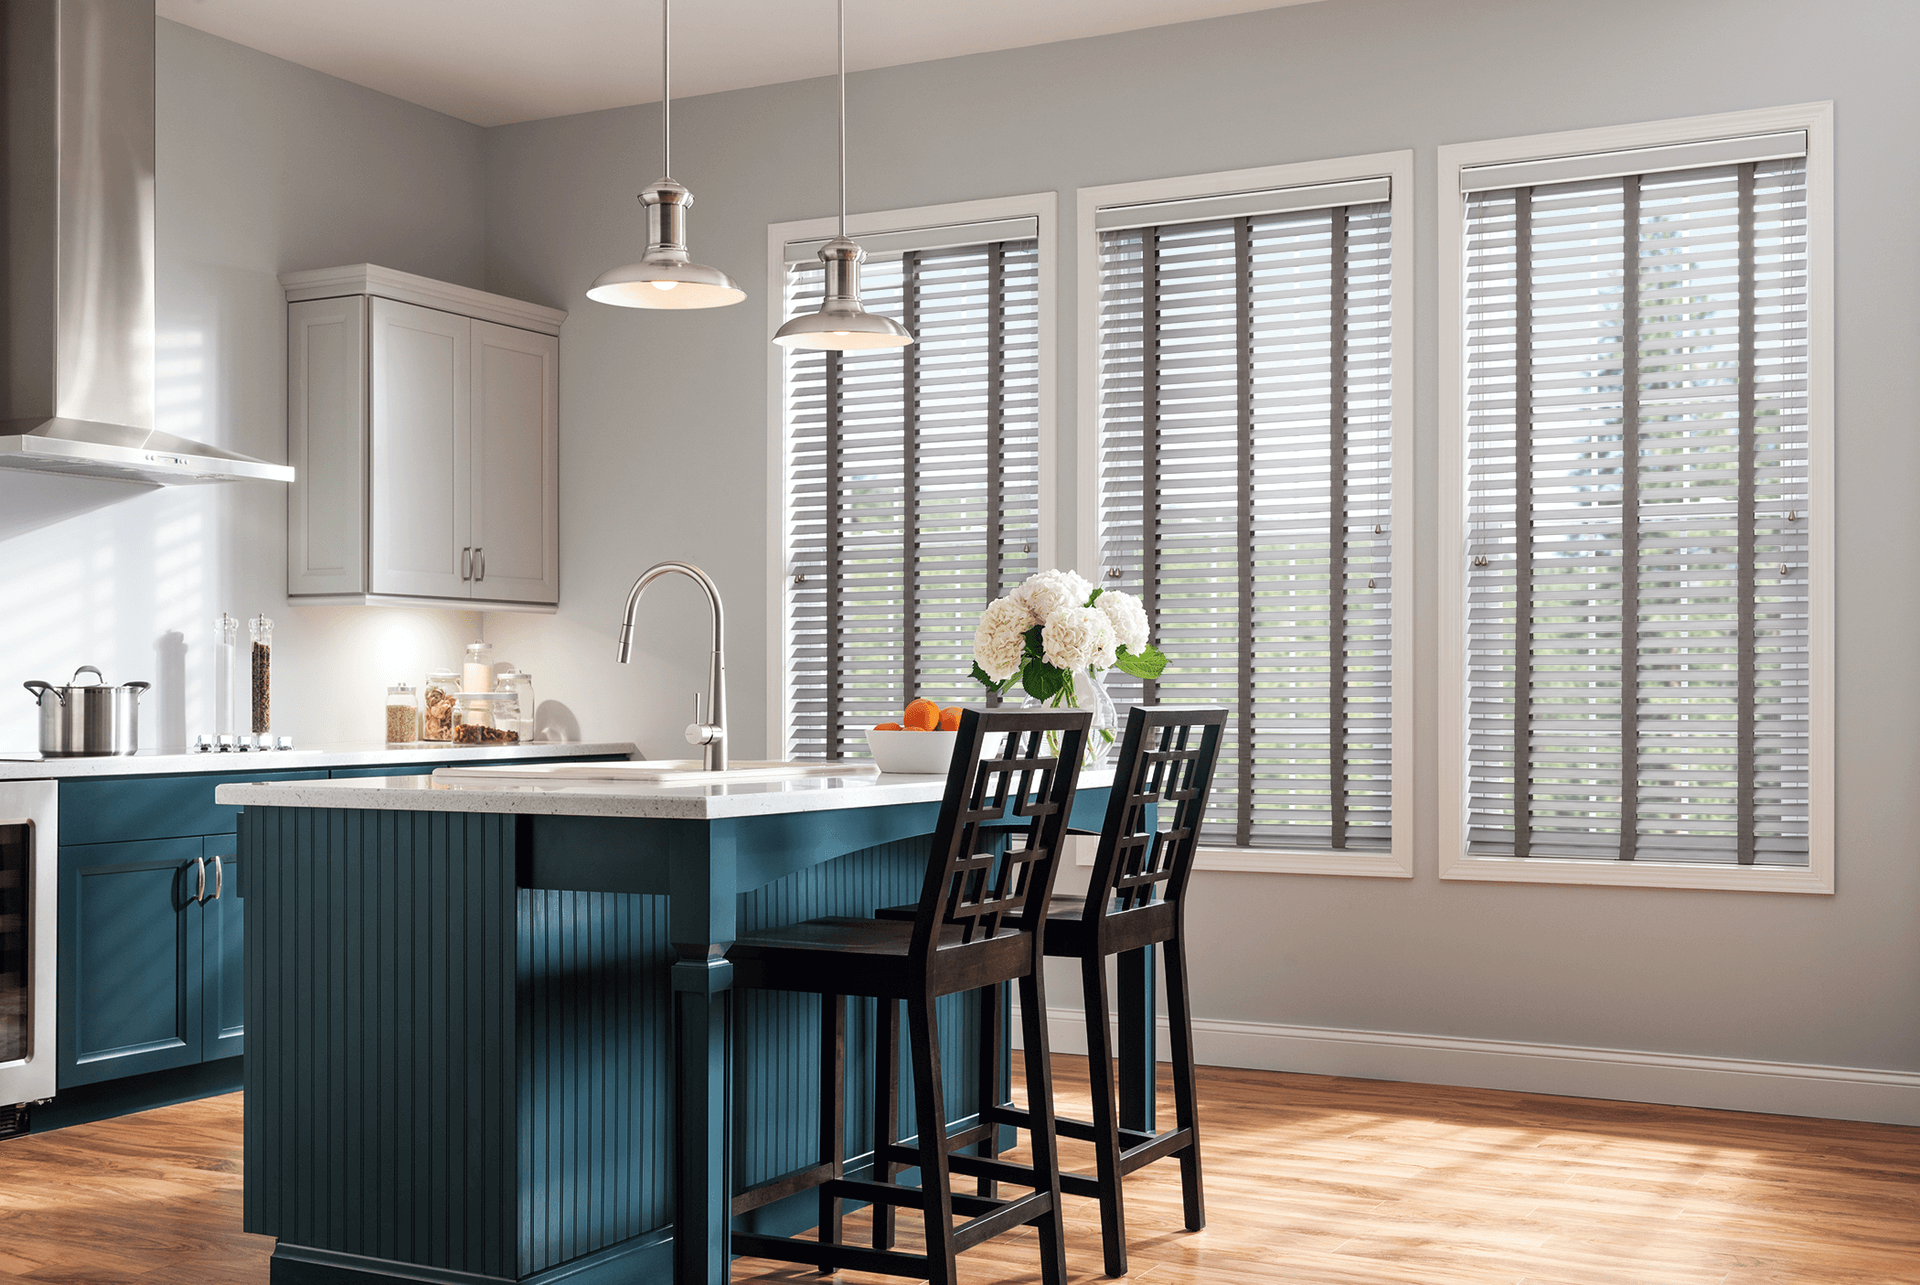 Modern kitchen roller blinds are a great window dressing. They are stylishly gorgeous and have multiple functions. The blush and soft white tone is suitable for a modern look and add an extra touch of elegance in this modern kitchen space